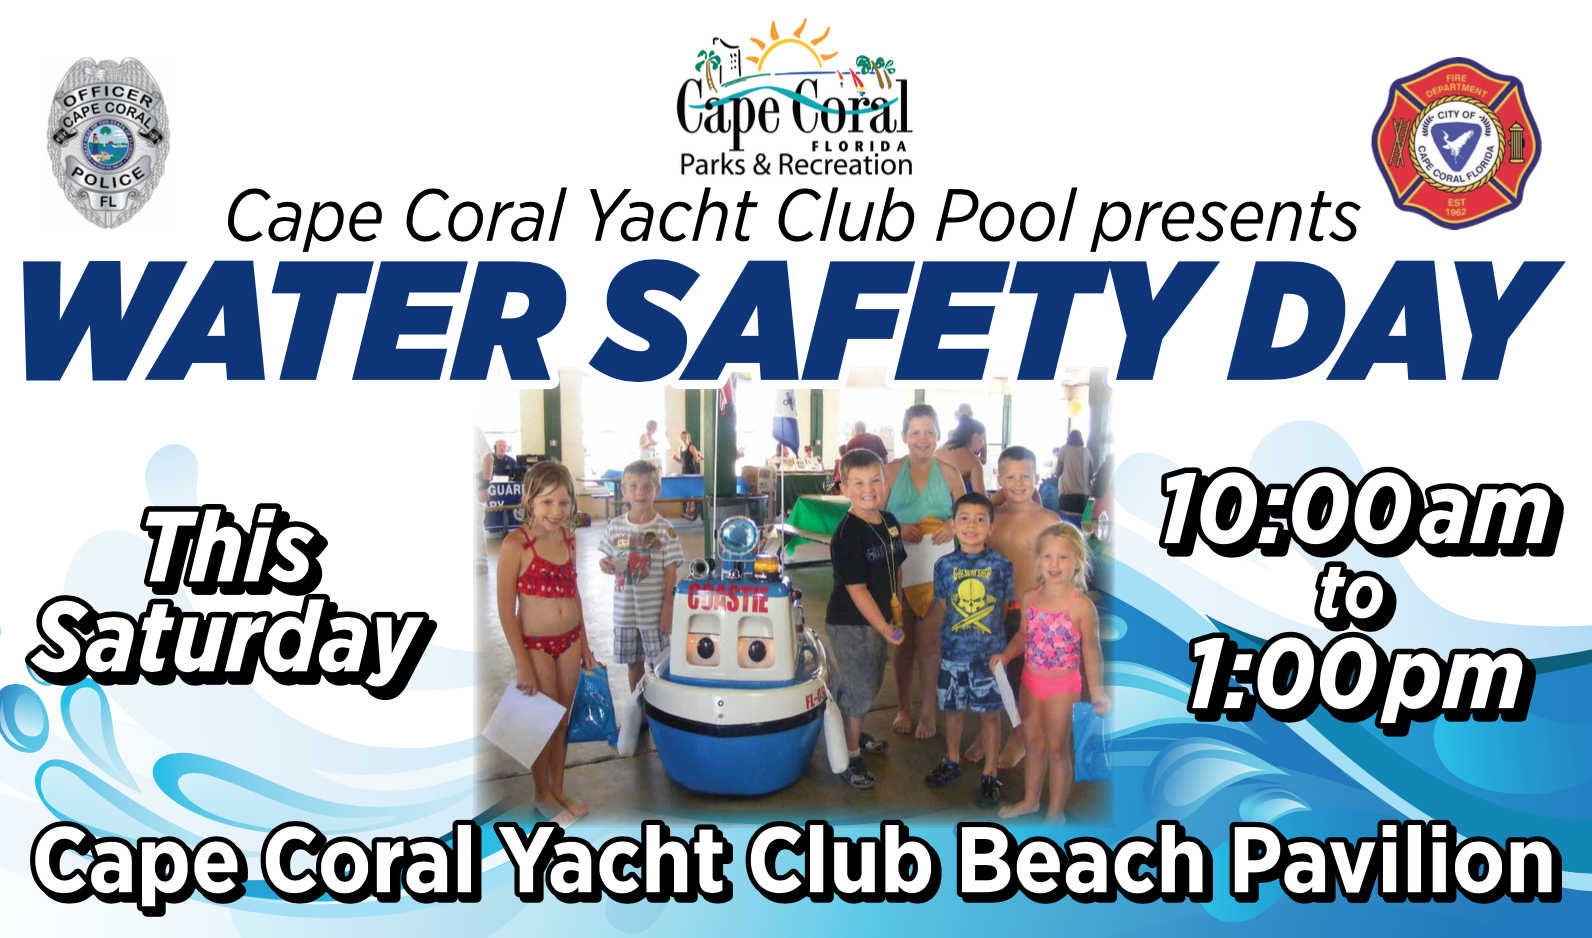 Cape Coral Water Safety Day, Saturday May 6th, 2017, 10am-1pm